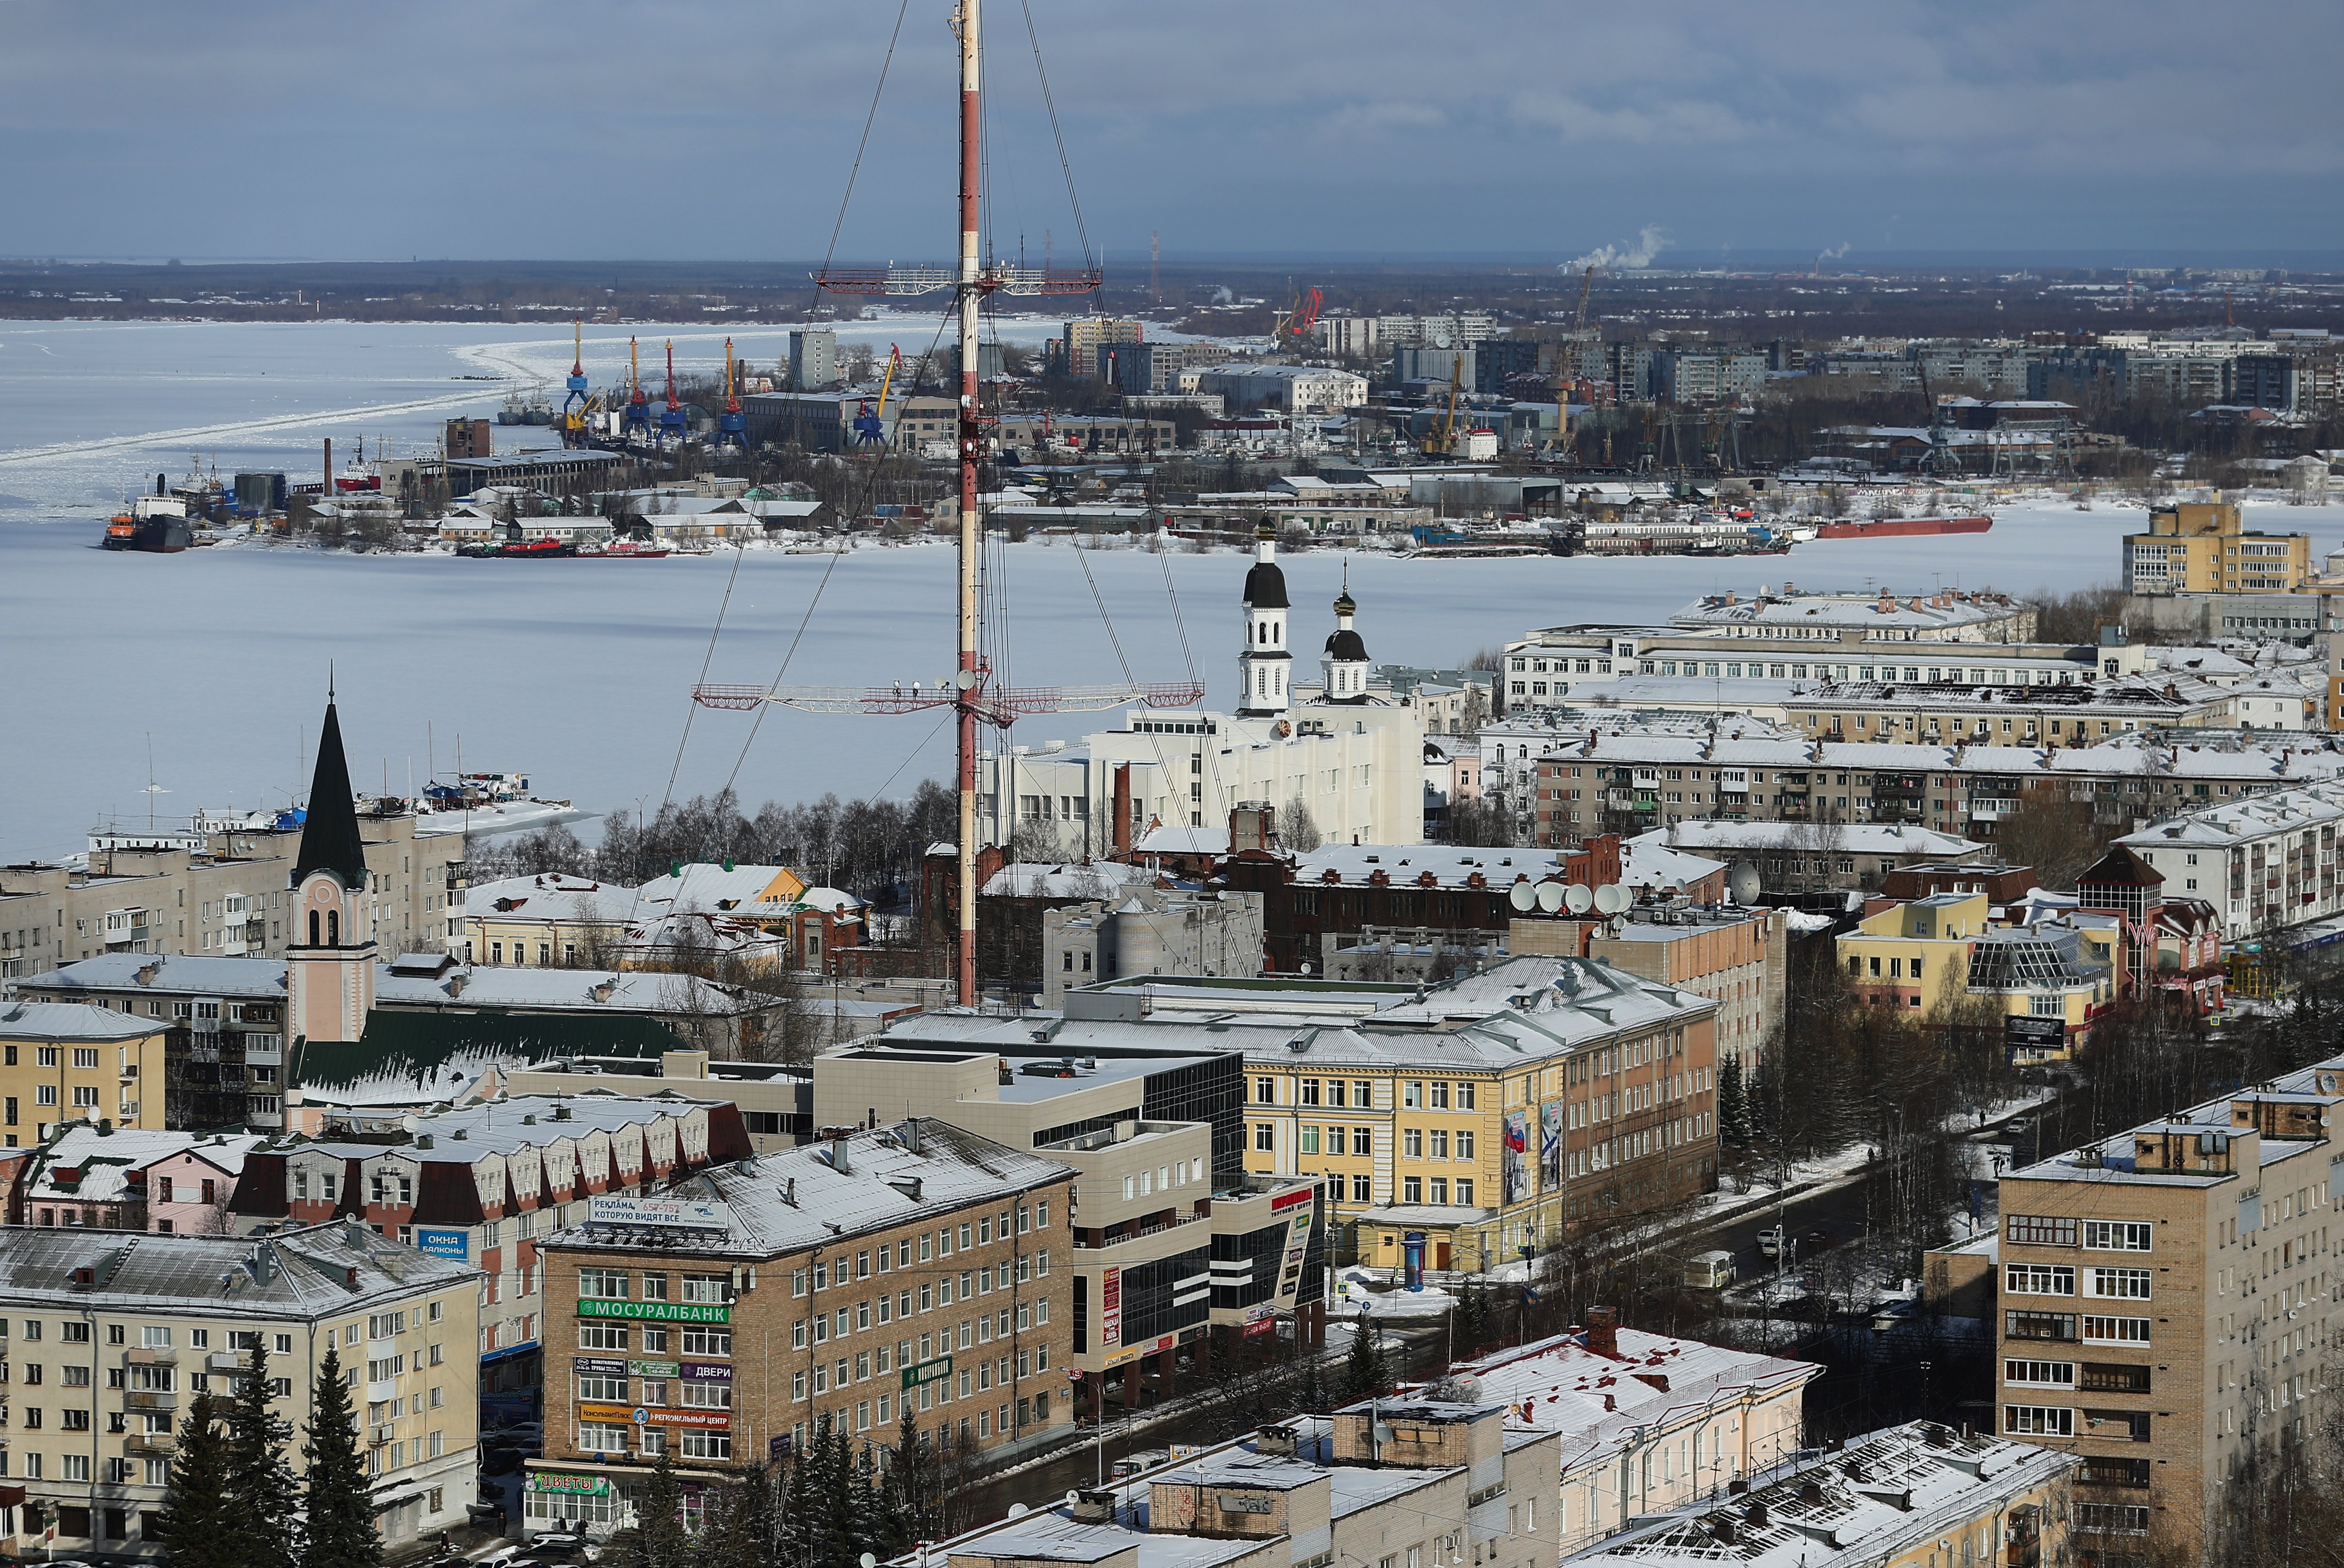 A view of the Northern Dvina River in Arkhangelsk, Russia, March 27, 2017. (Vladimir Smirnov / TASS Host Photo Agency via International Arctic Forum)